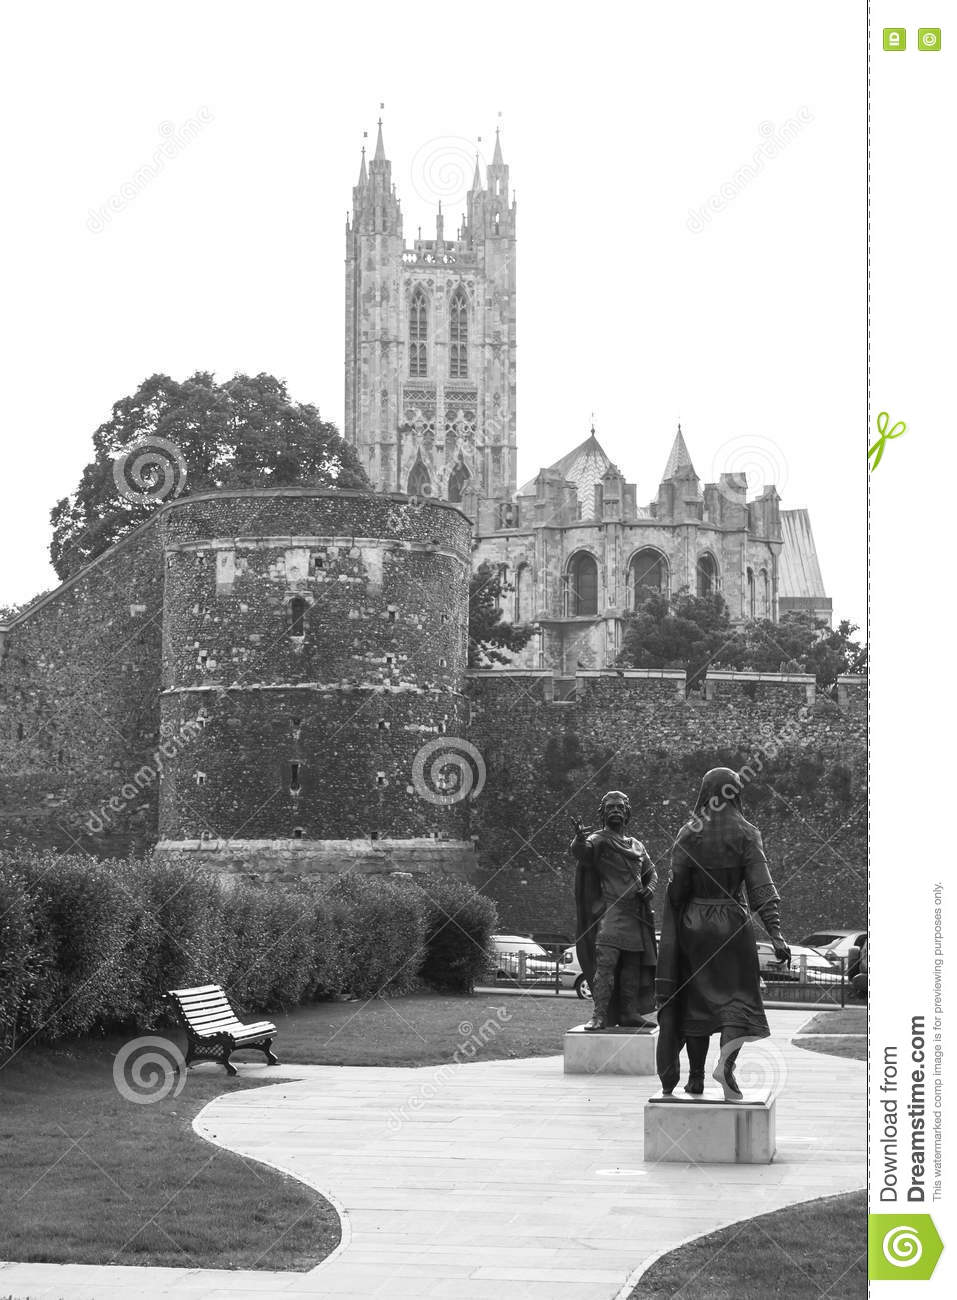 Canterbury kent united kingdom june 16 2006 view of canterbury cathedral and city wall from lady woottons green where statues of king ethelbert and